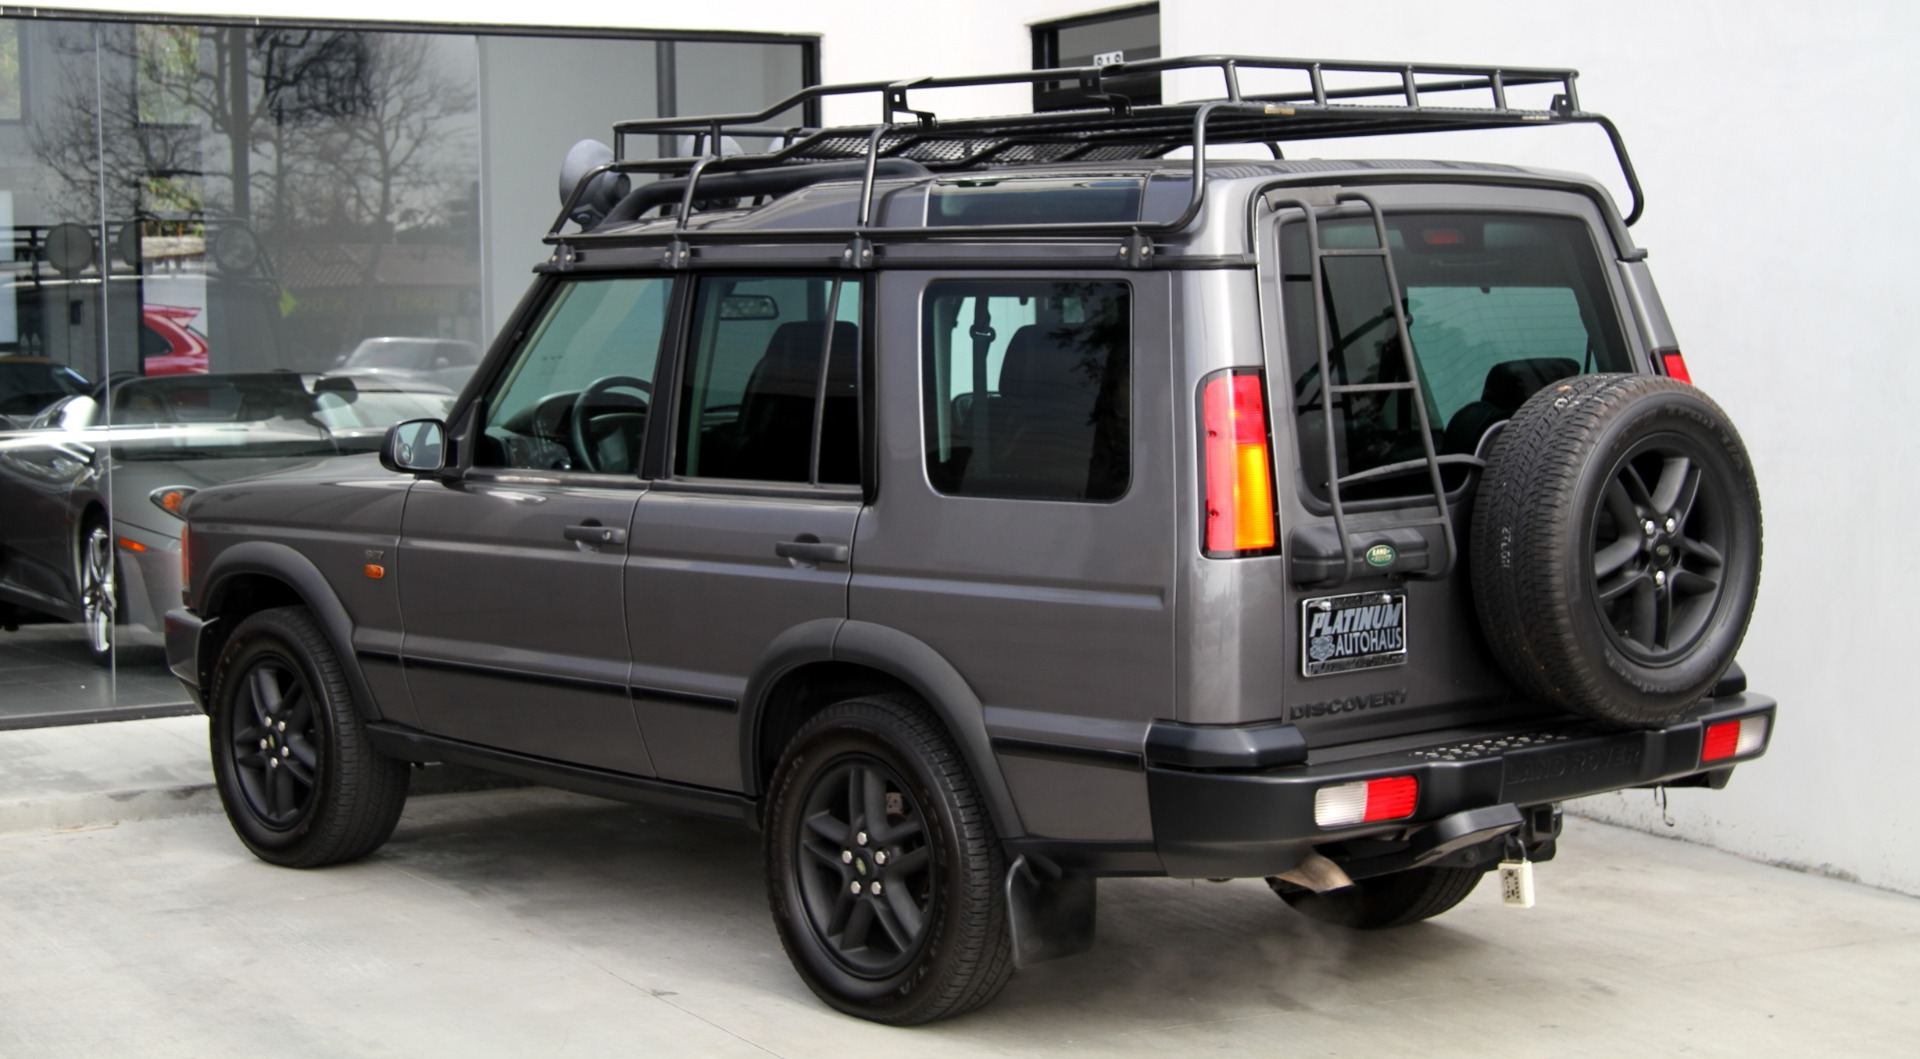 2004 land rover discovery ii se7 stock 856998 for sale. Black Bedroom Furniture Sets. Home Design Ideas